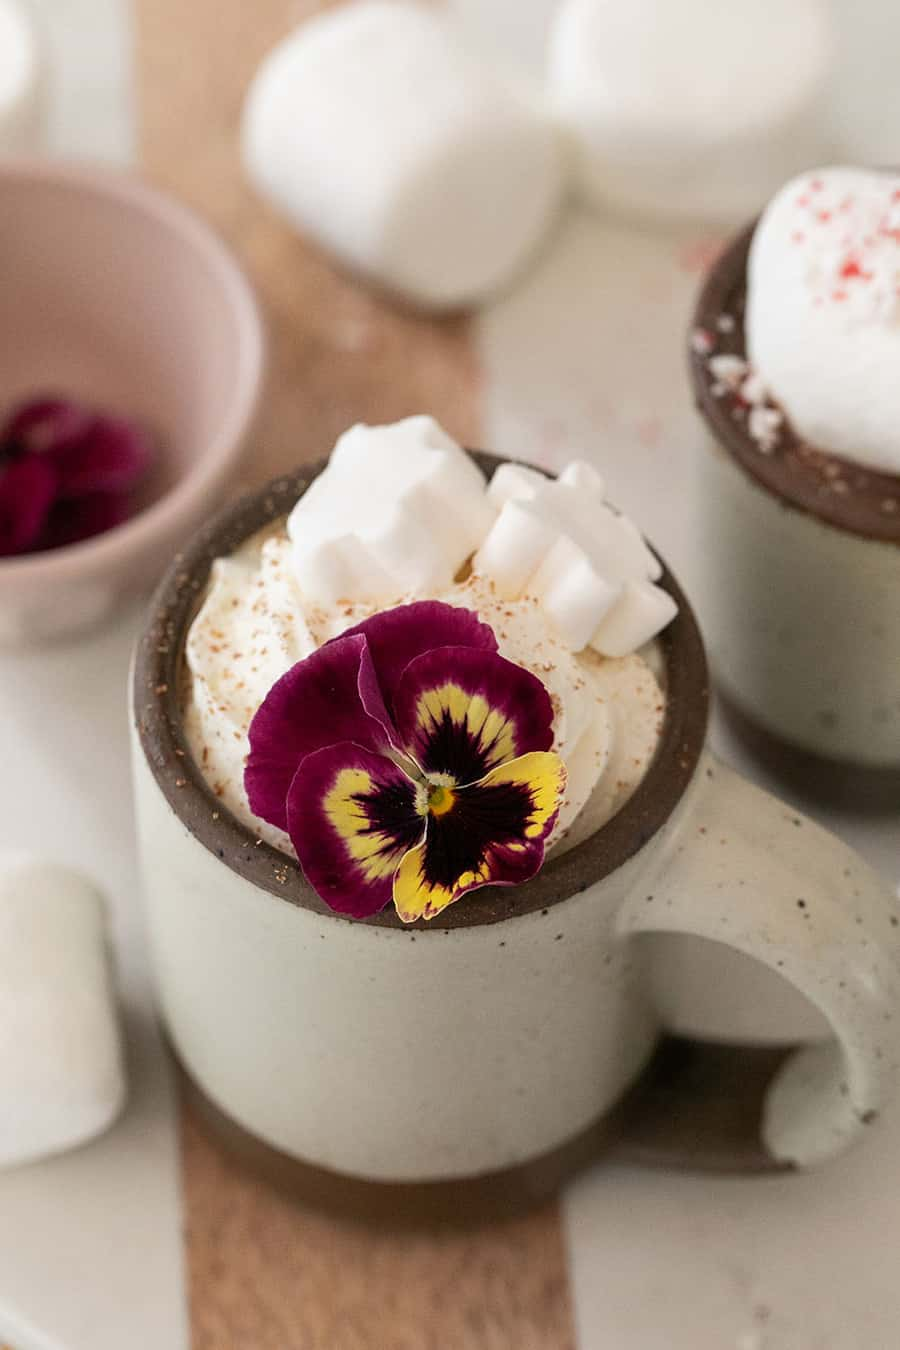 Hot chocolate in a mug topped with whipped cream and an edible flower.